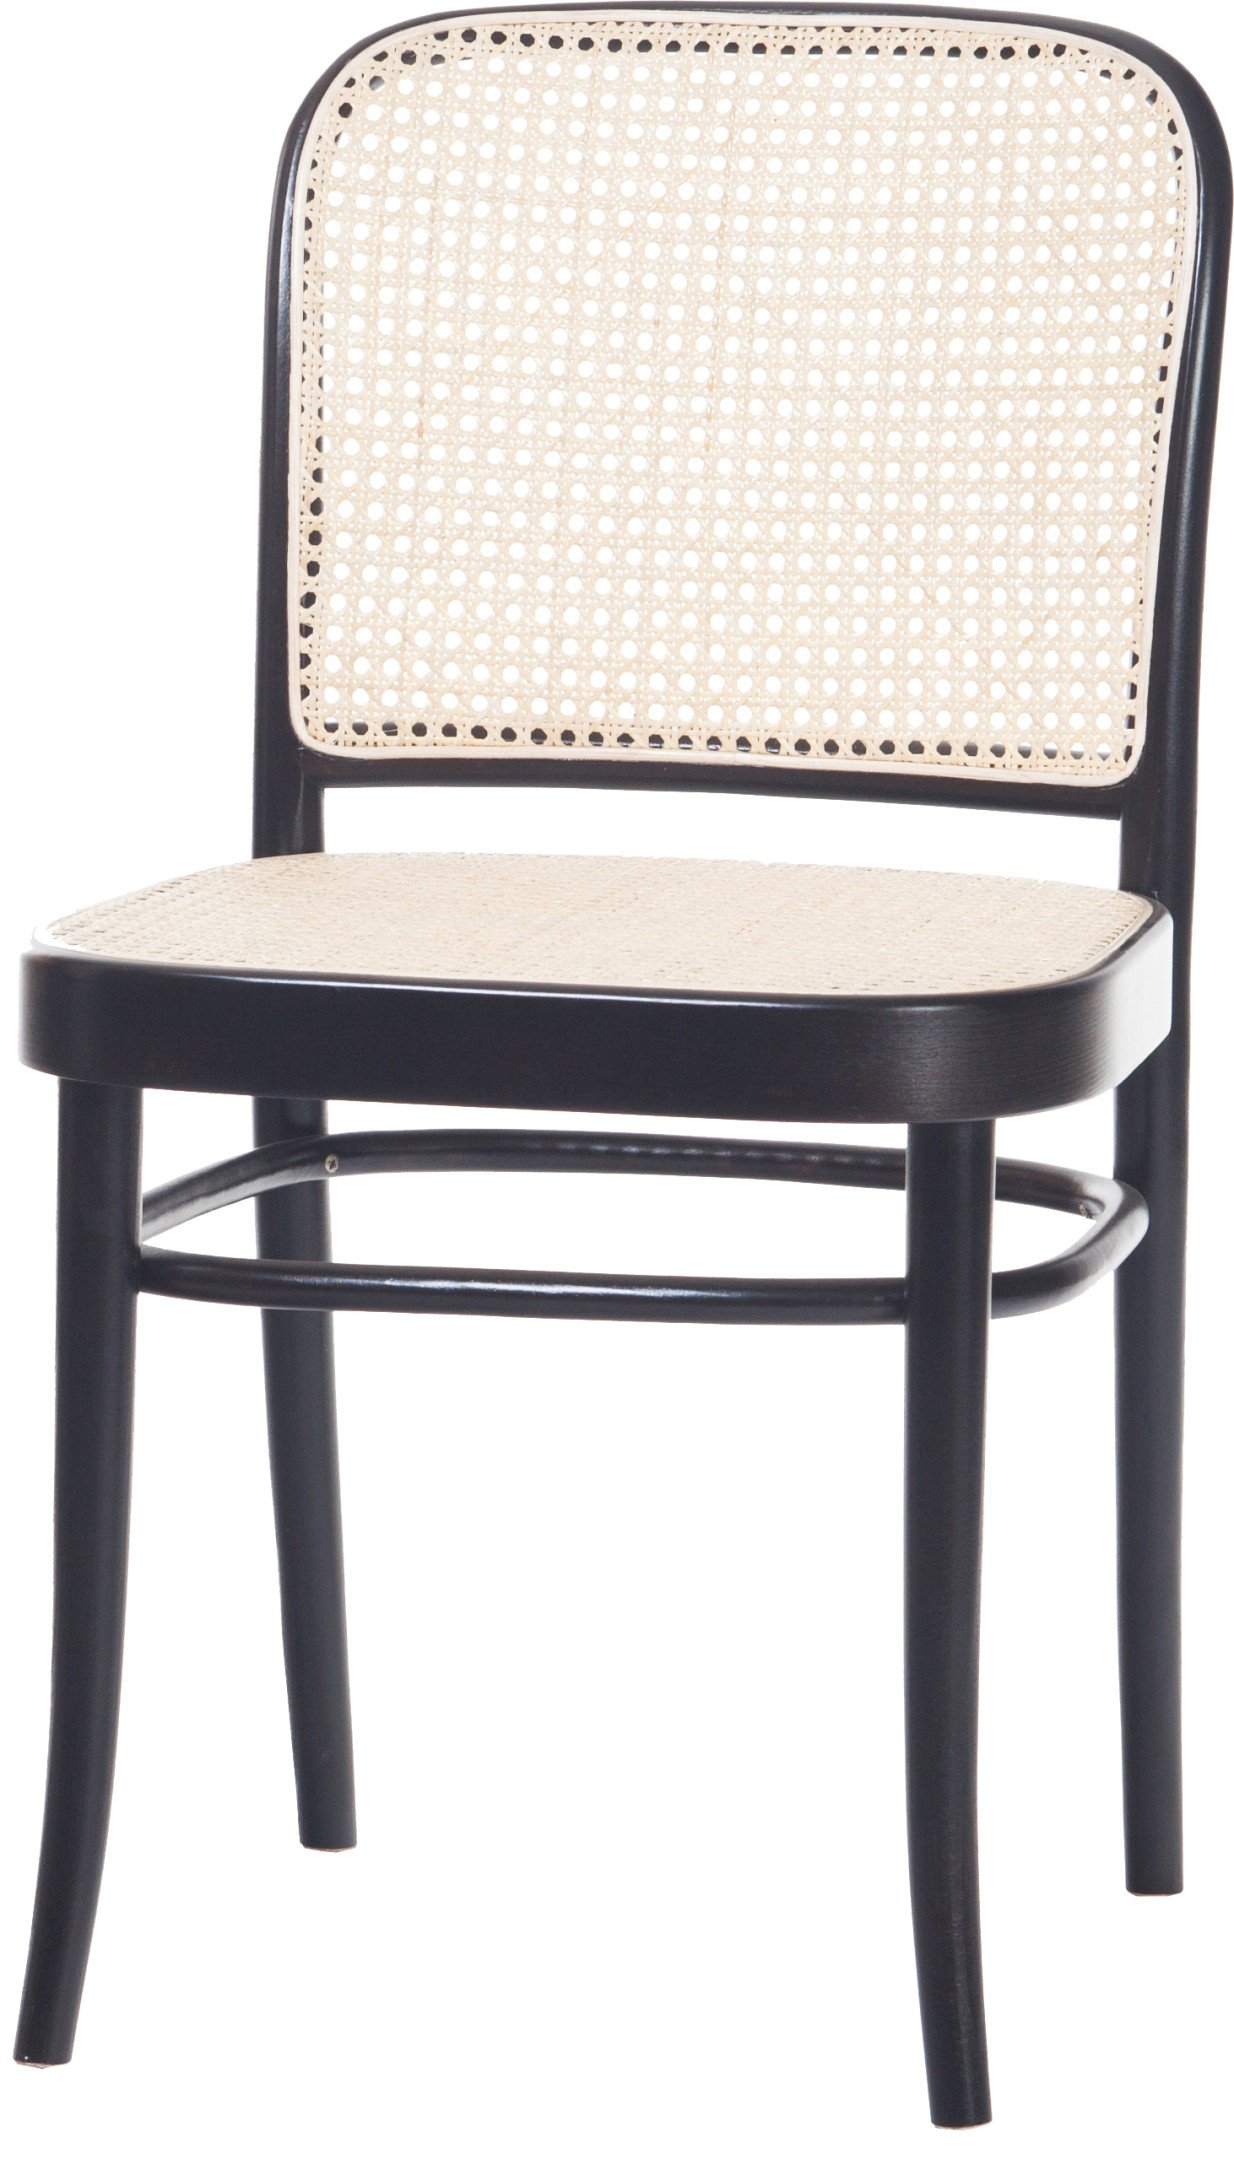 Black Grain 811 Chair with Cane Rattan Seat and Backrest, TON